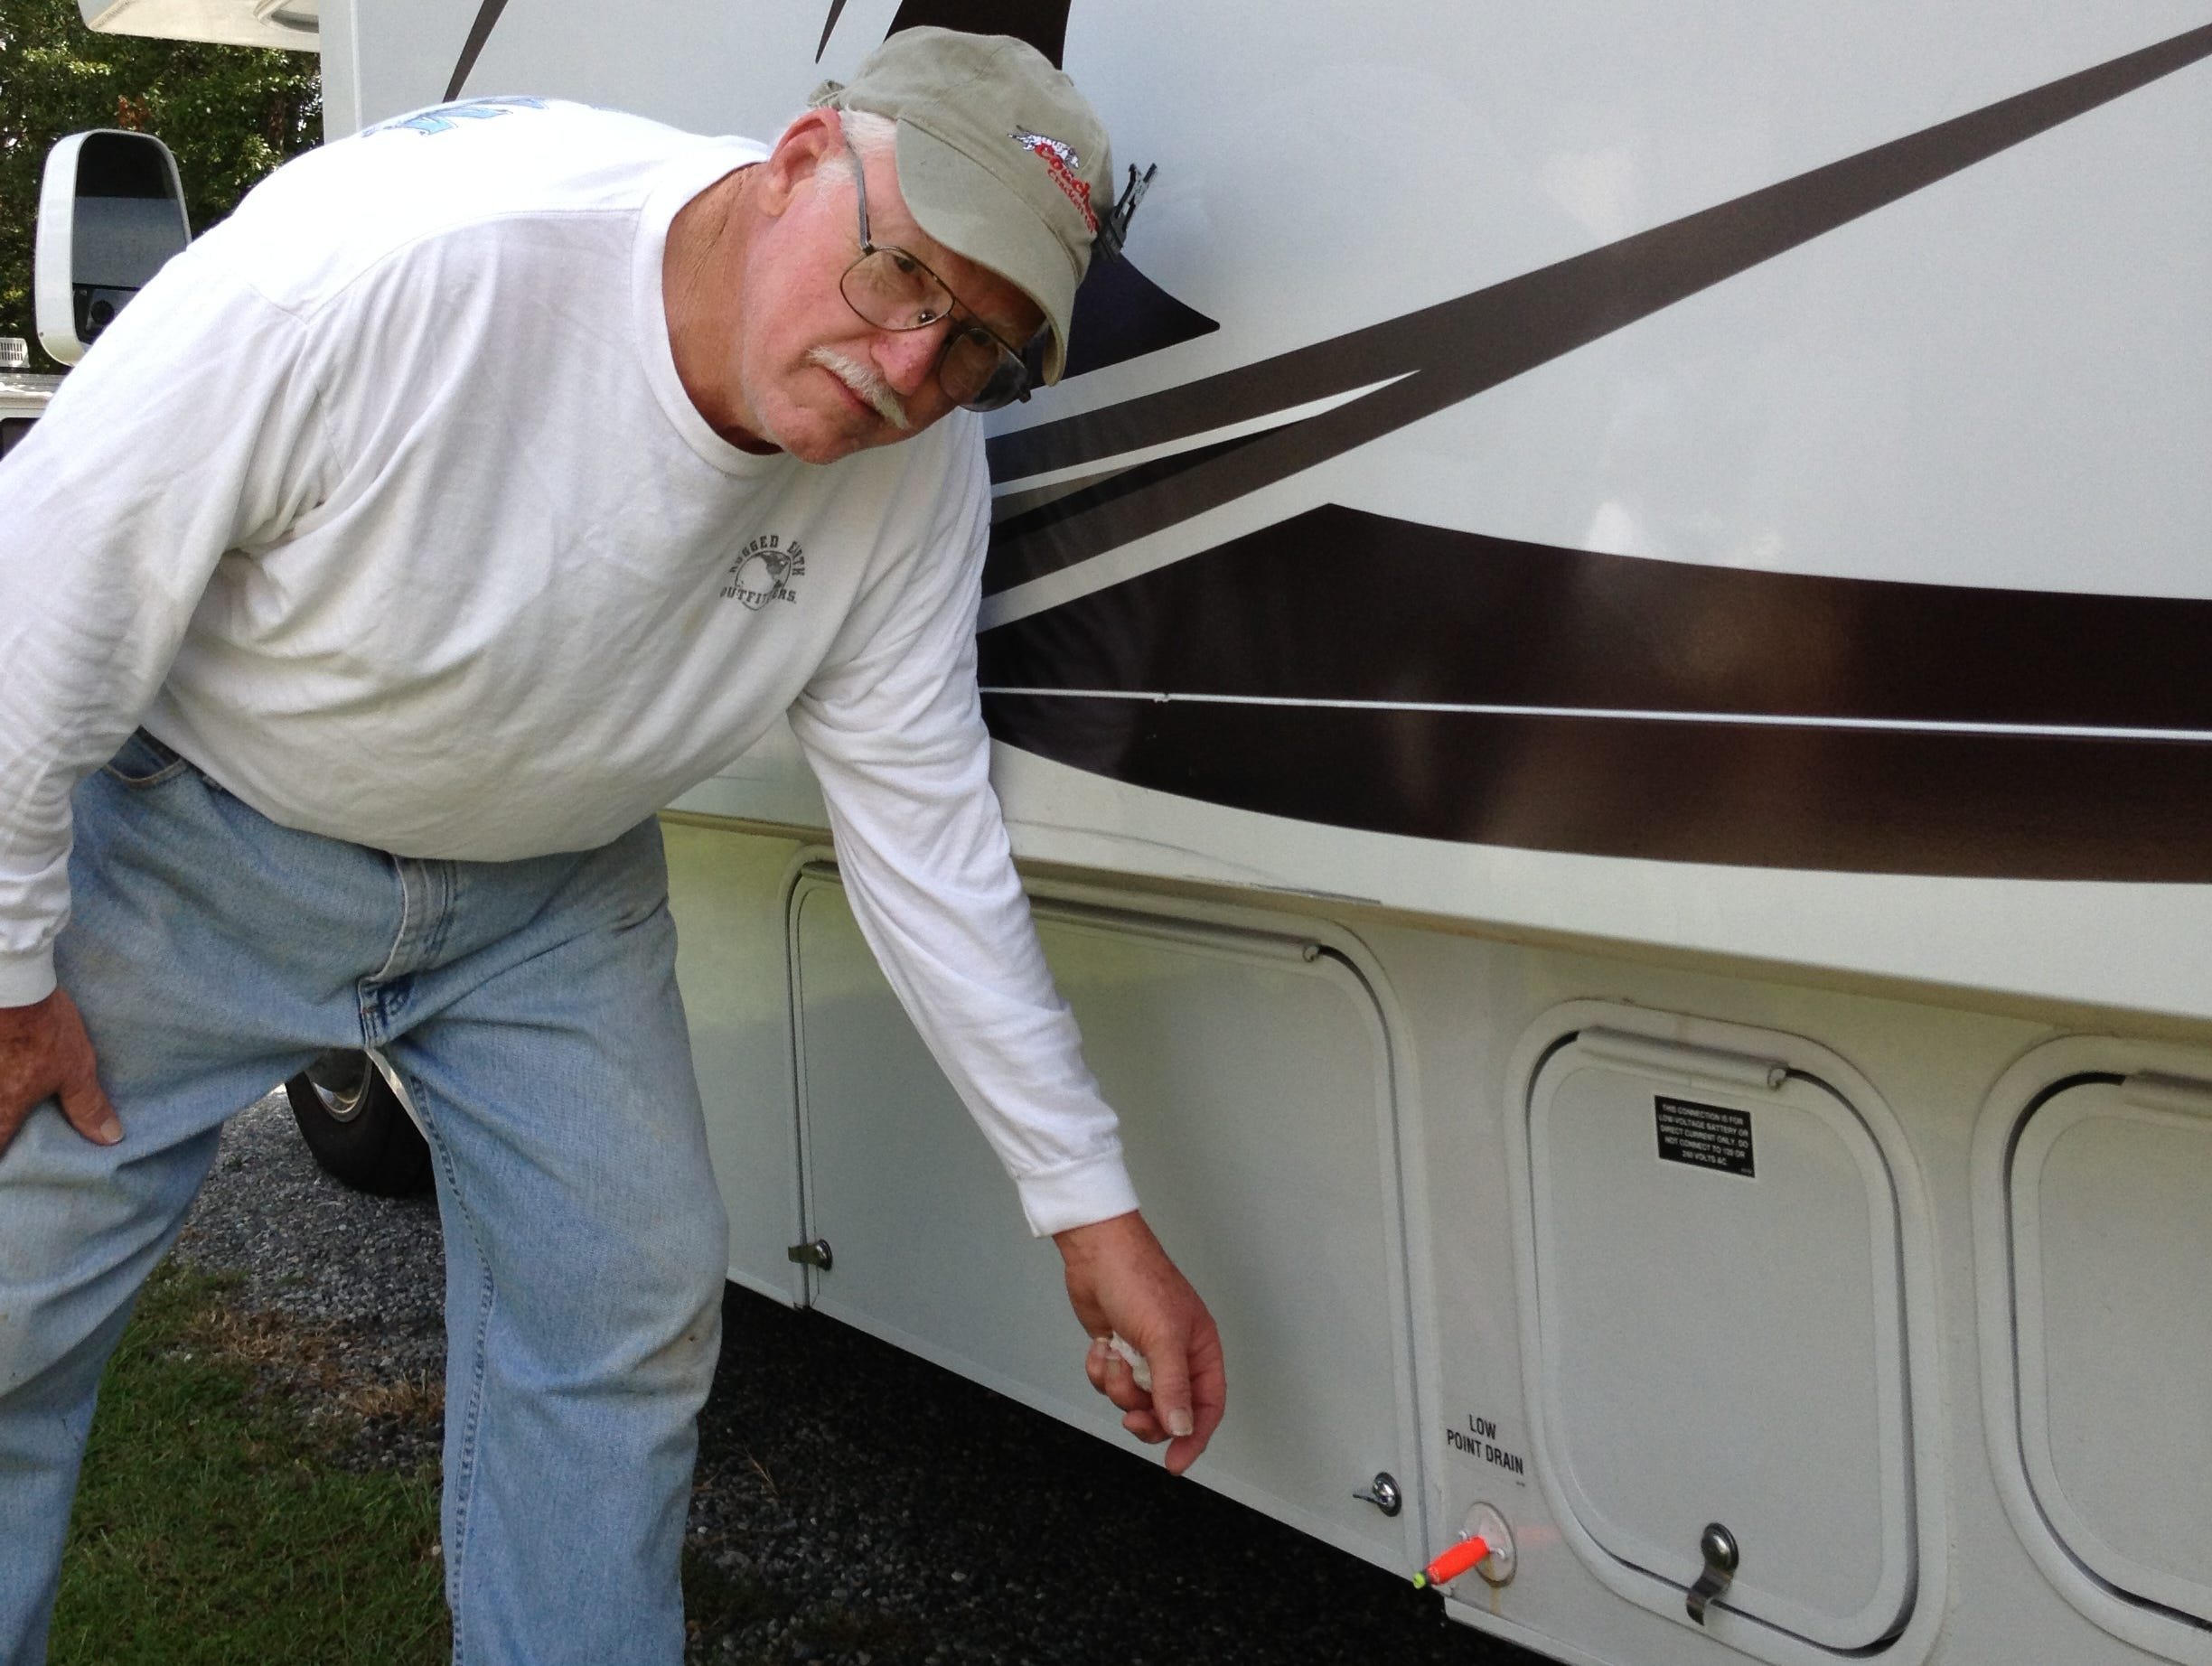 John Newham inserts a fishing lure as a makeshift plug for the leaking low-point drain.